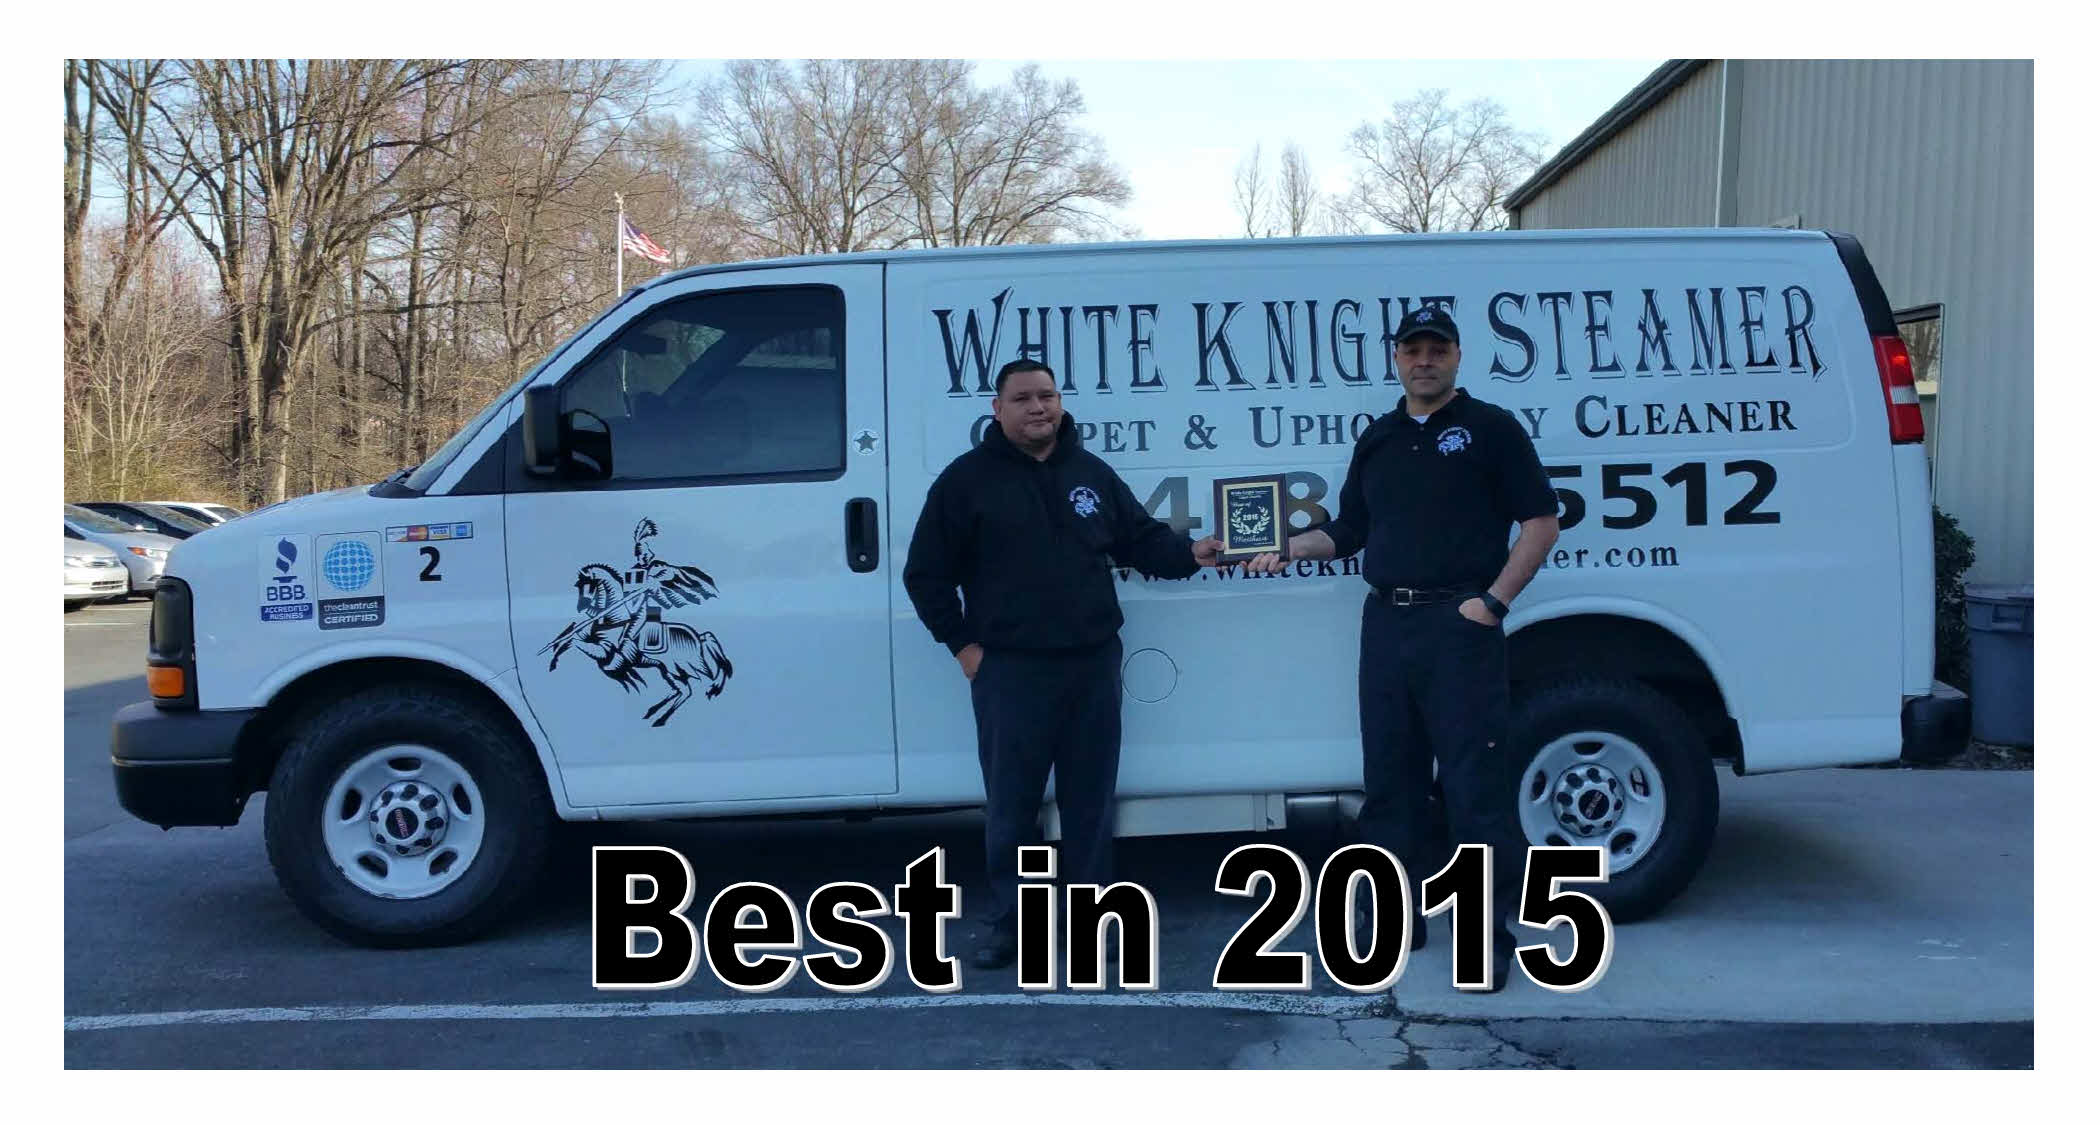 Matthews Best Carpet & Upholstery Cleaner for 2015!